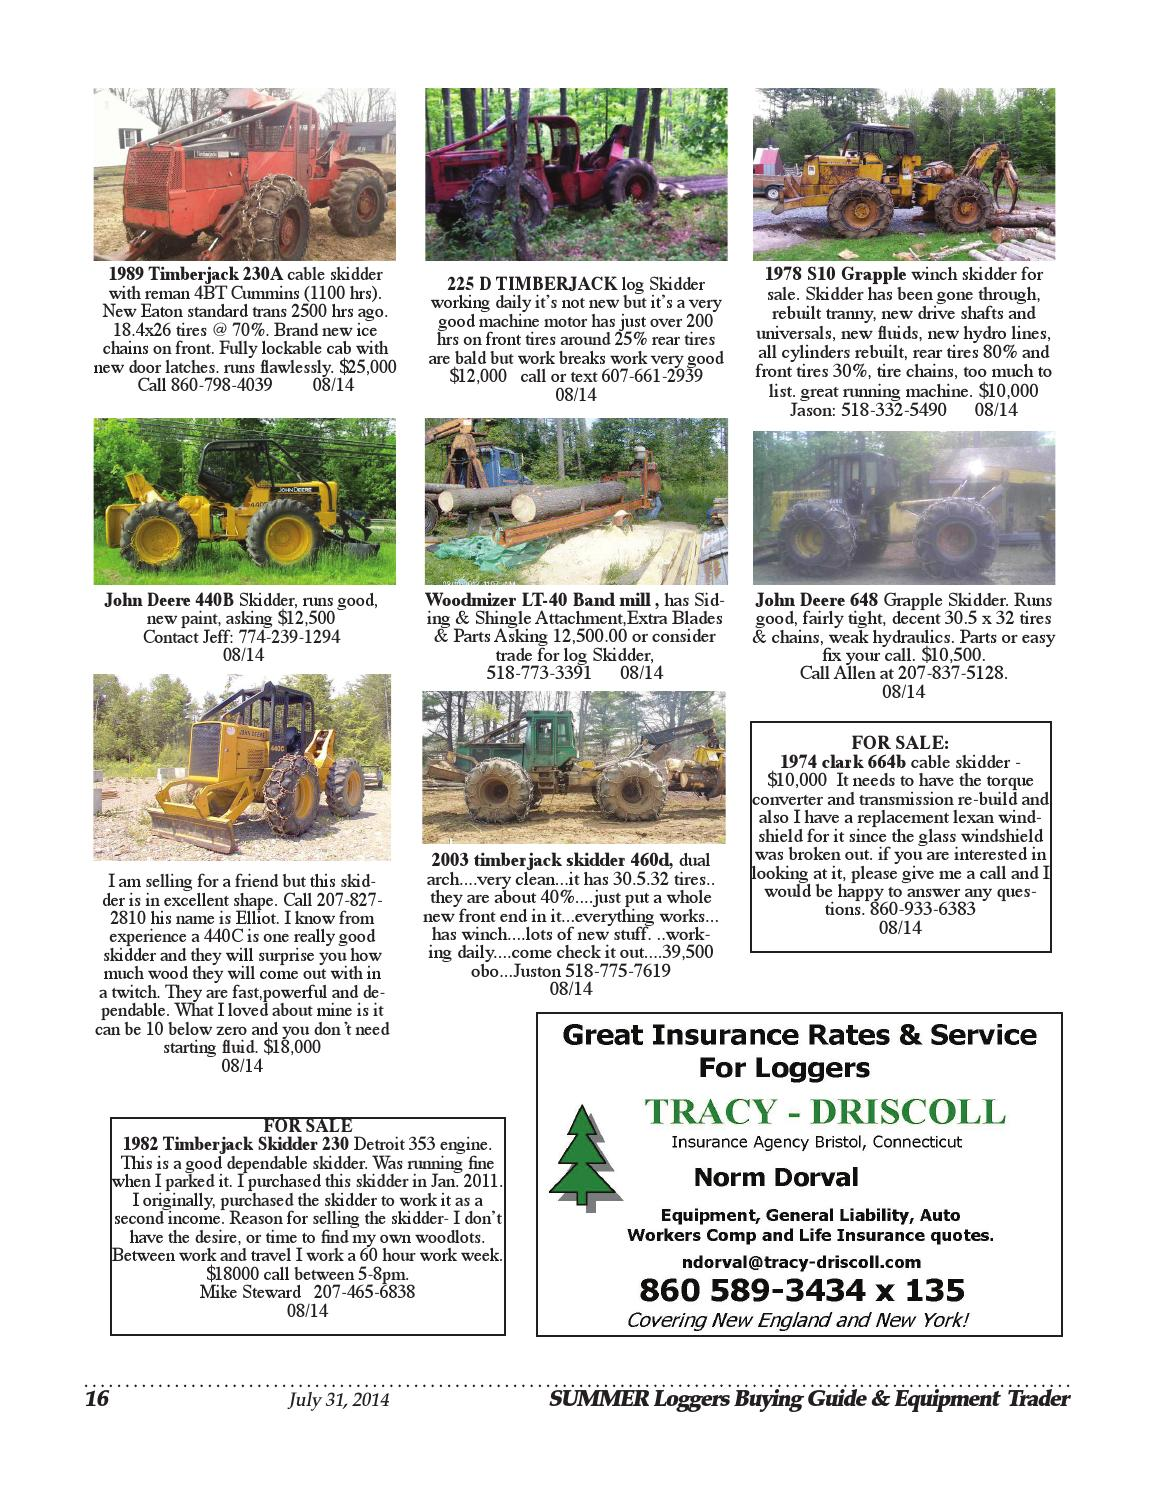 Summer Loggers Buying Guide 2014 by Log Street Publishers